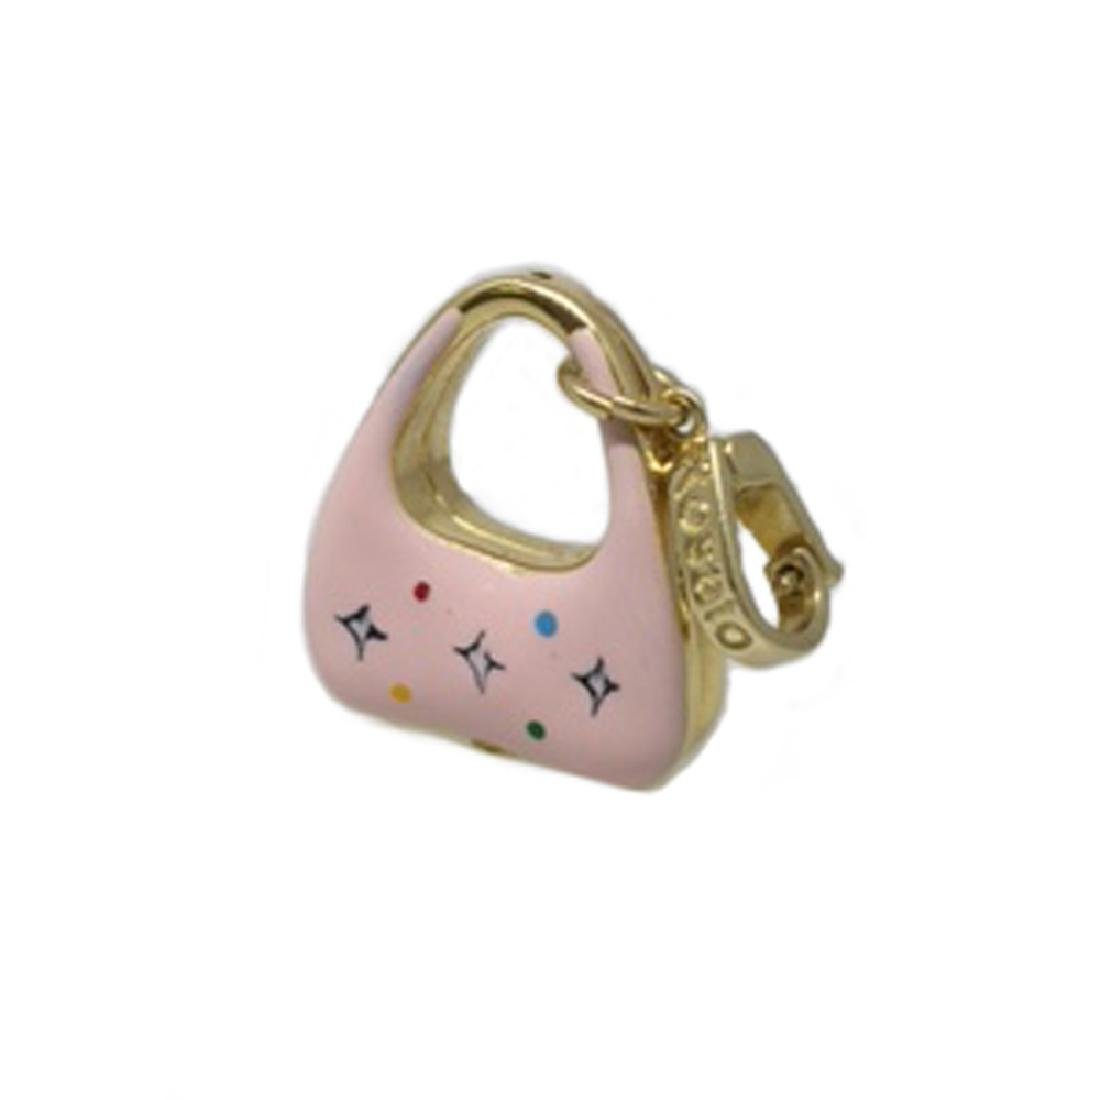 *Fine Jewelry 14KT Gold, Made In Italy, Pink Purse